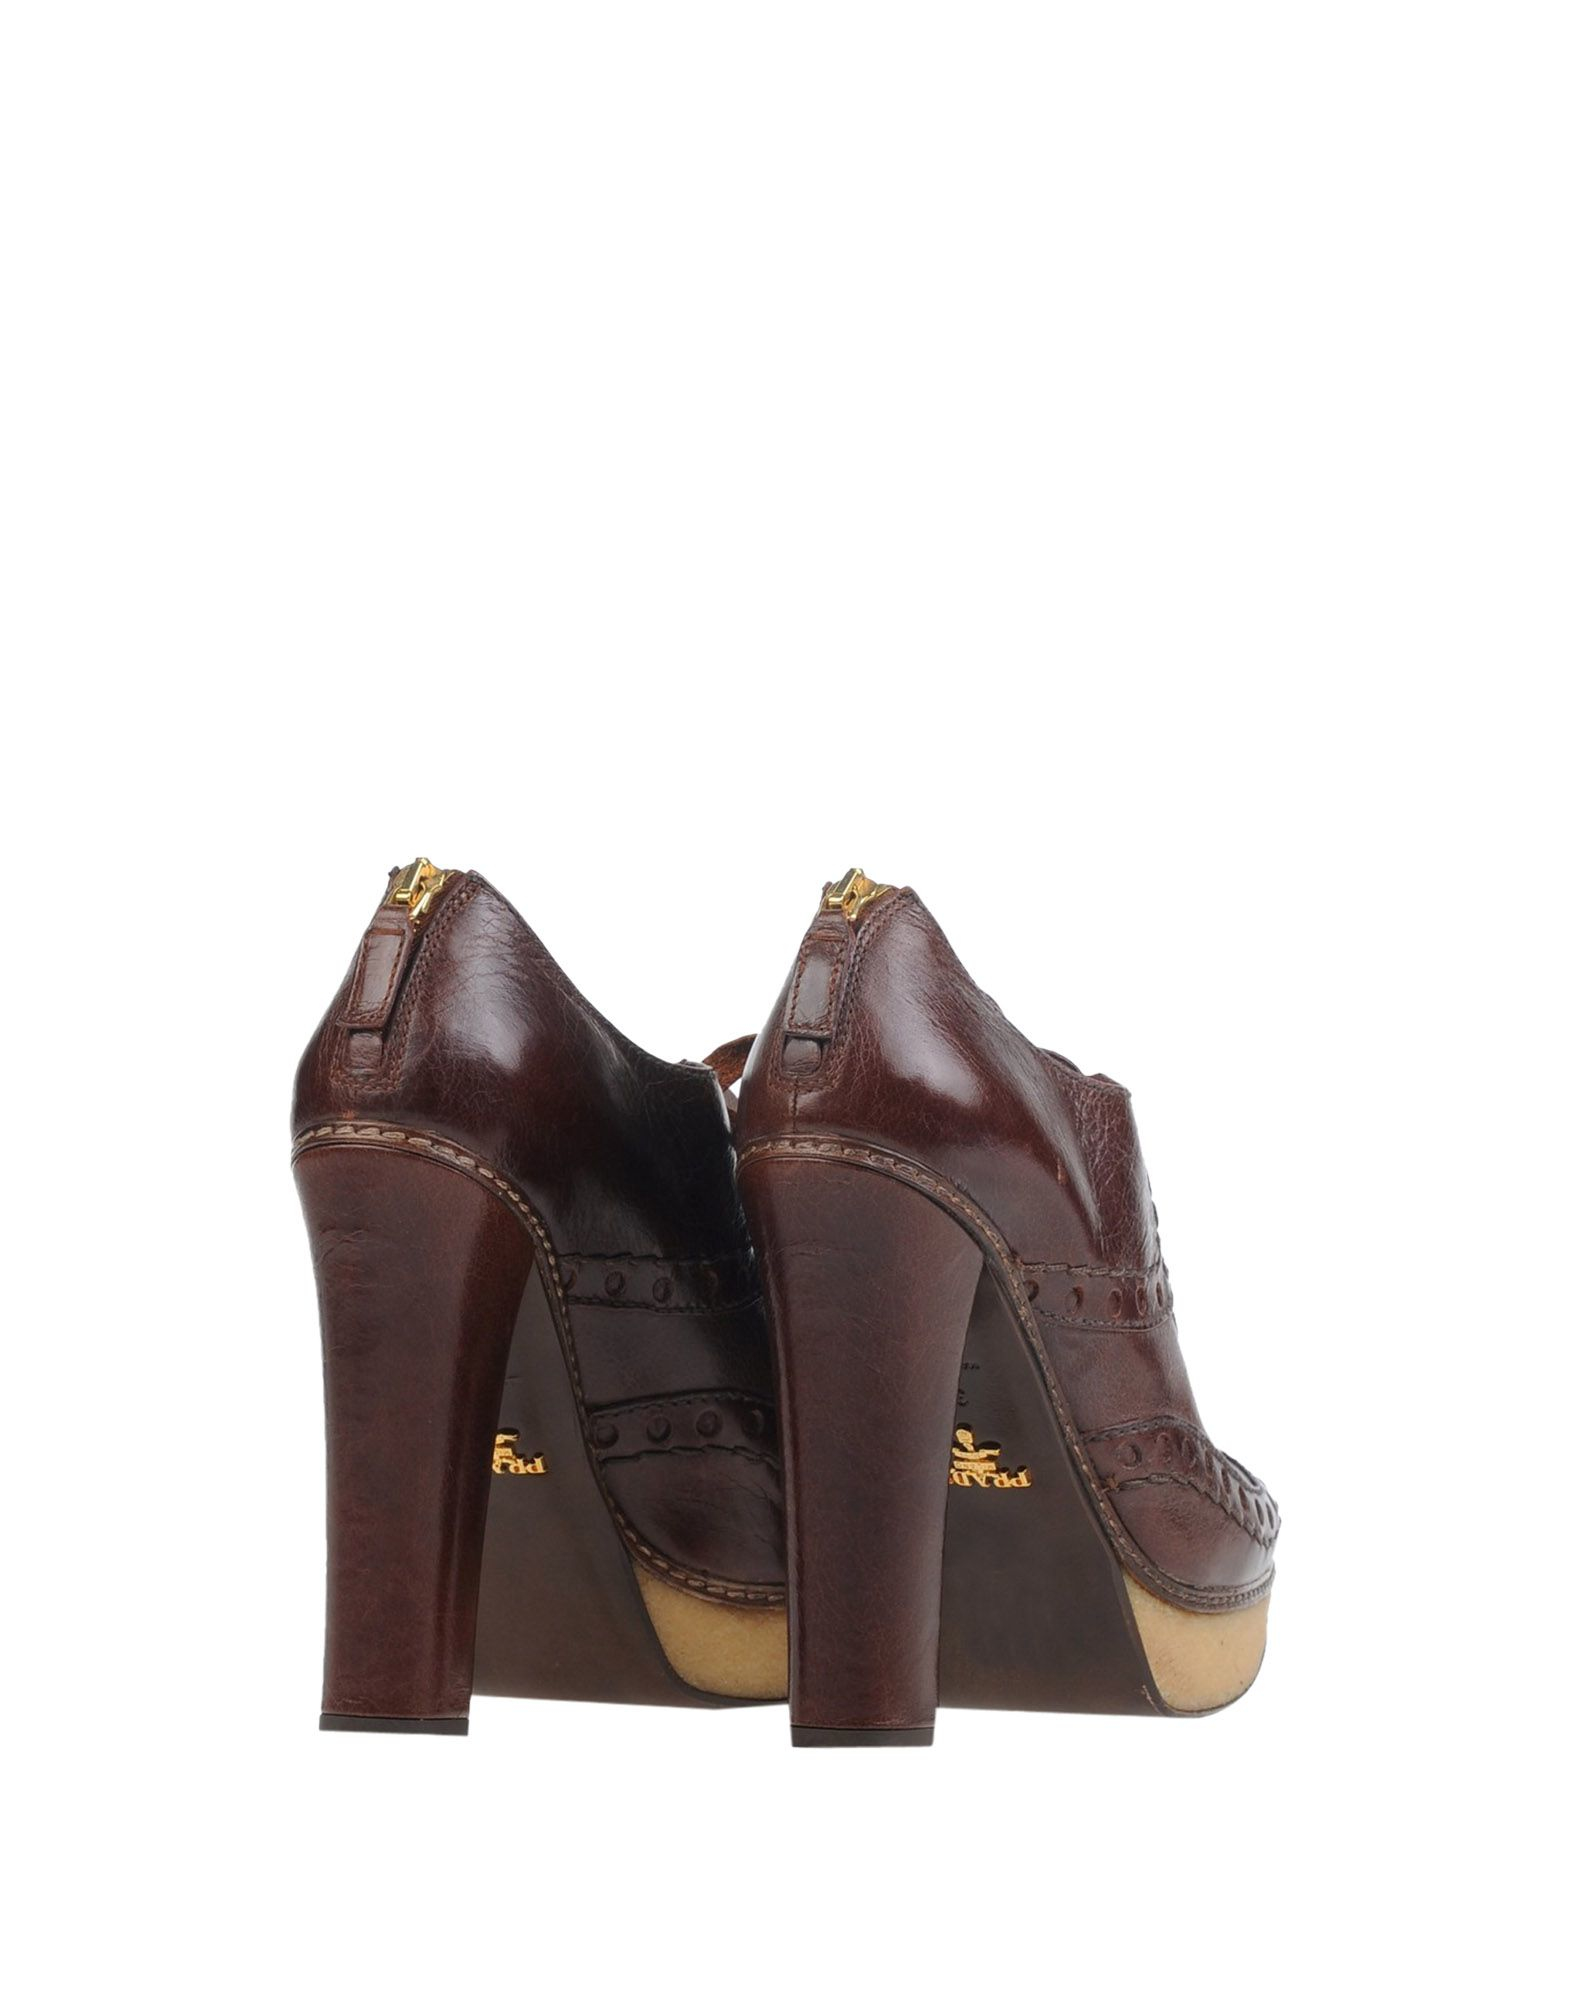 Prada Lace-up Shoes in Brown (Cocoa) | Lyst - Prada briefcase cocoa brown